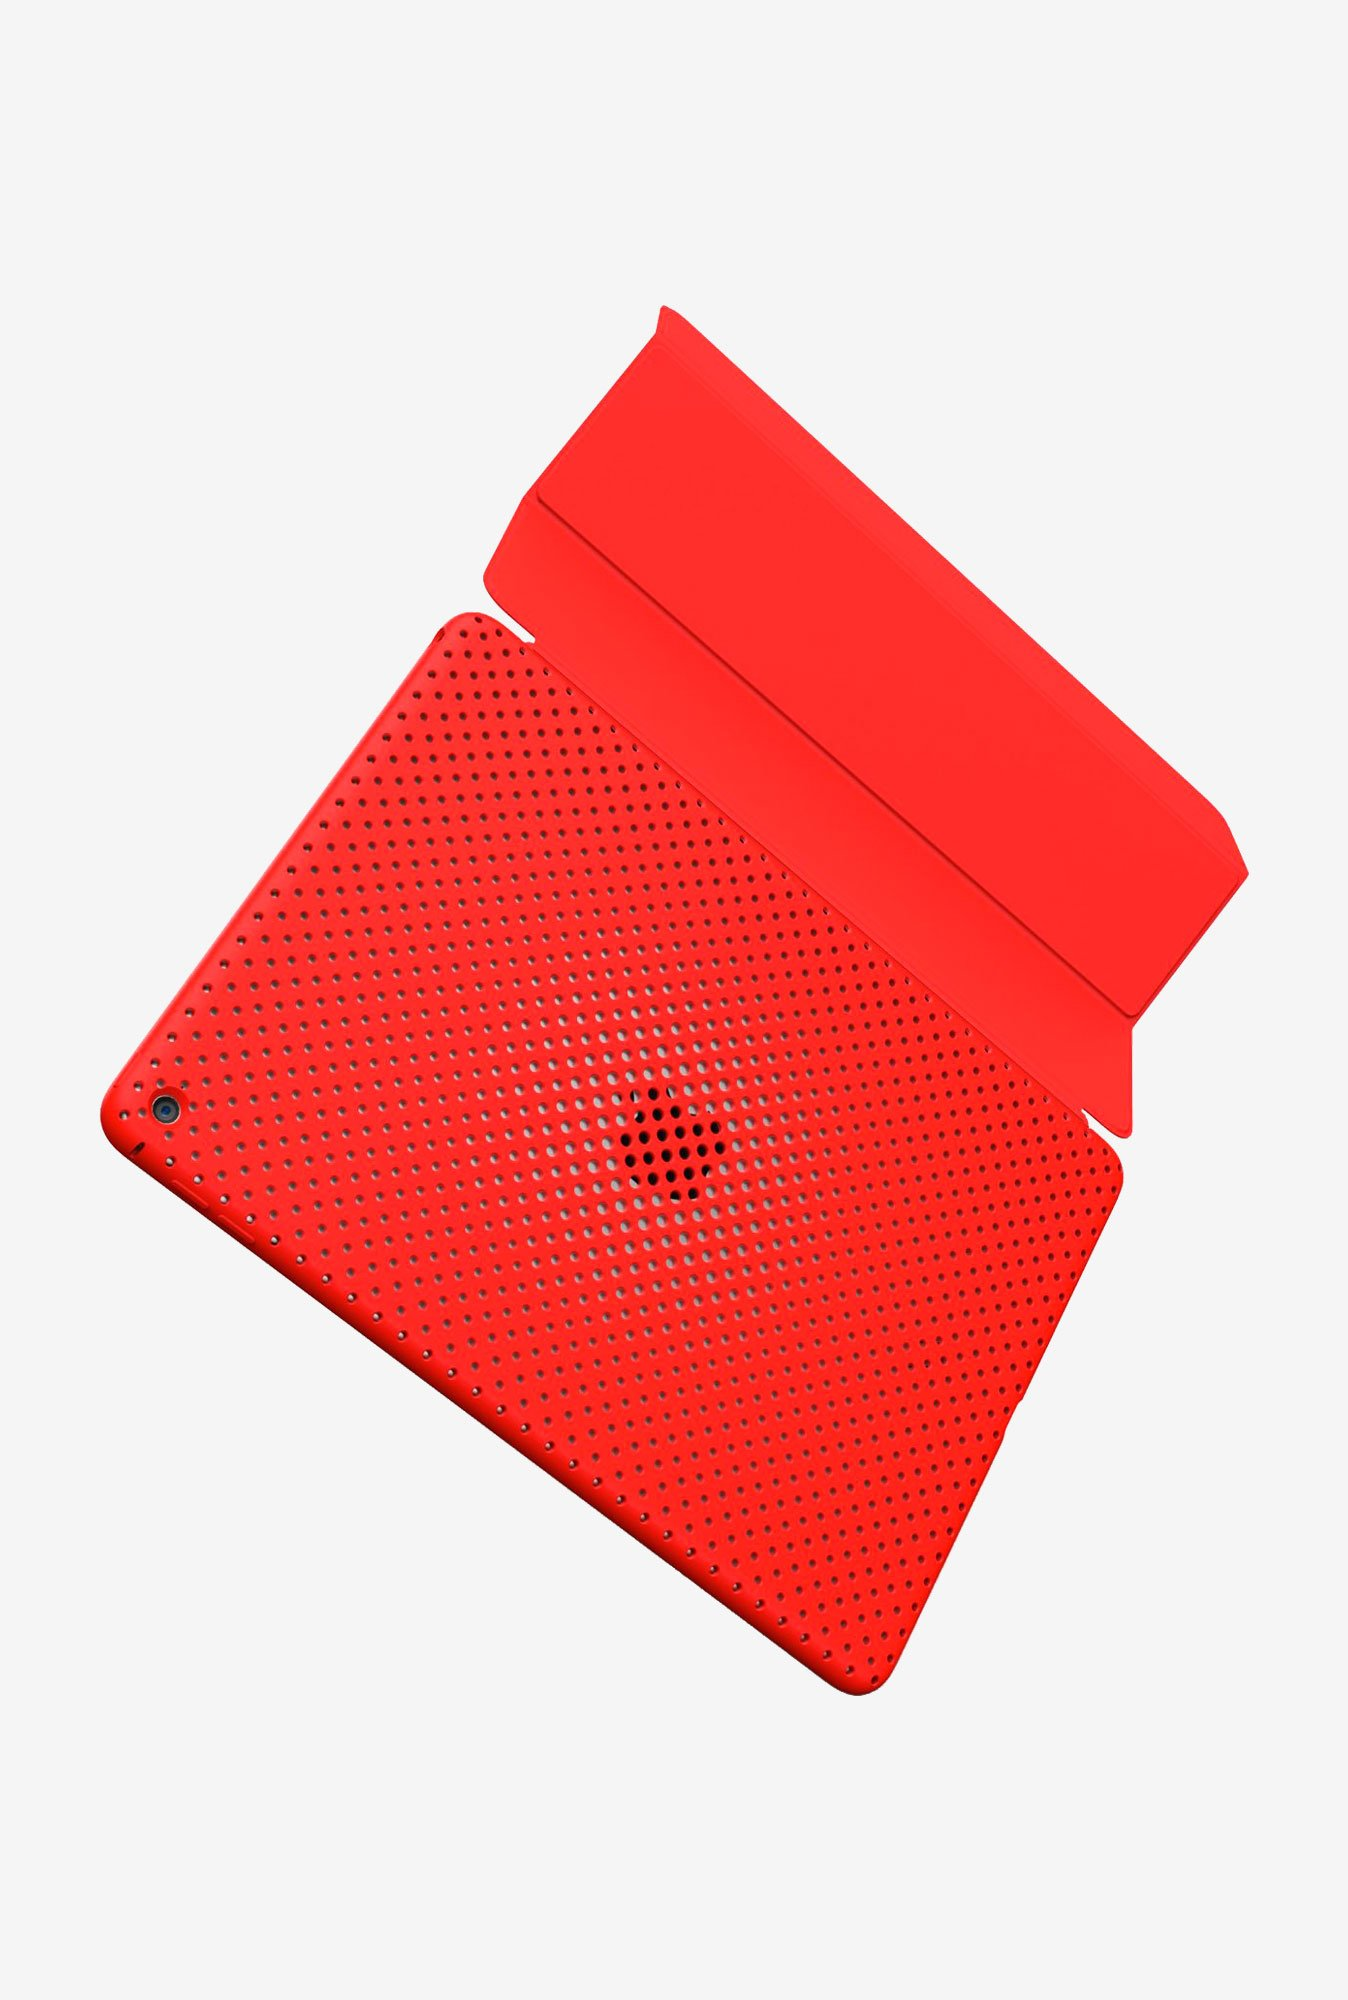 Andmesh AMMSD600-RED iPad Air 2 Mesh Case Red